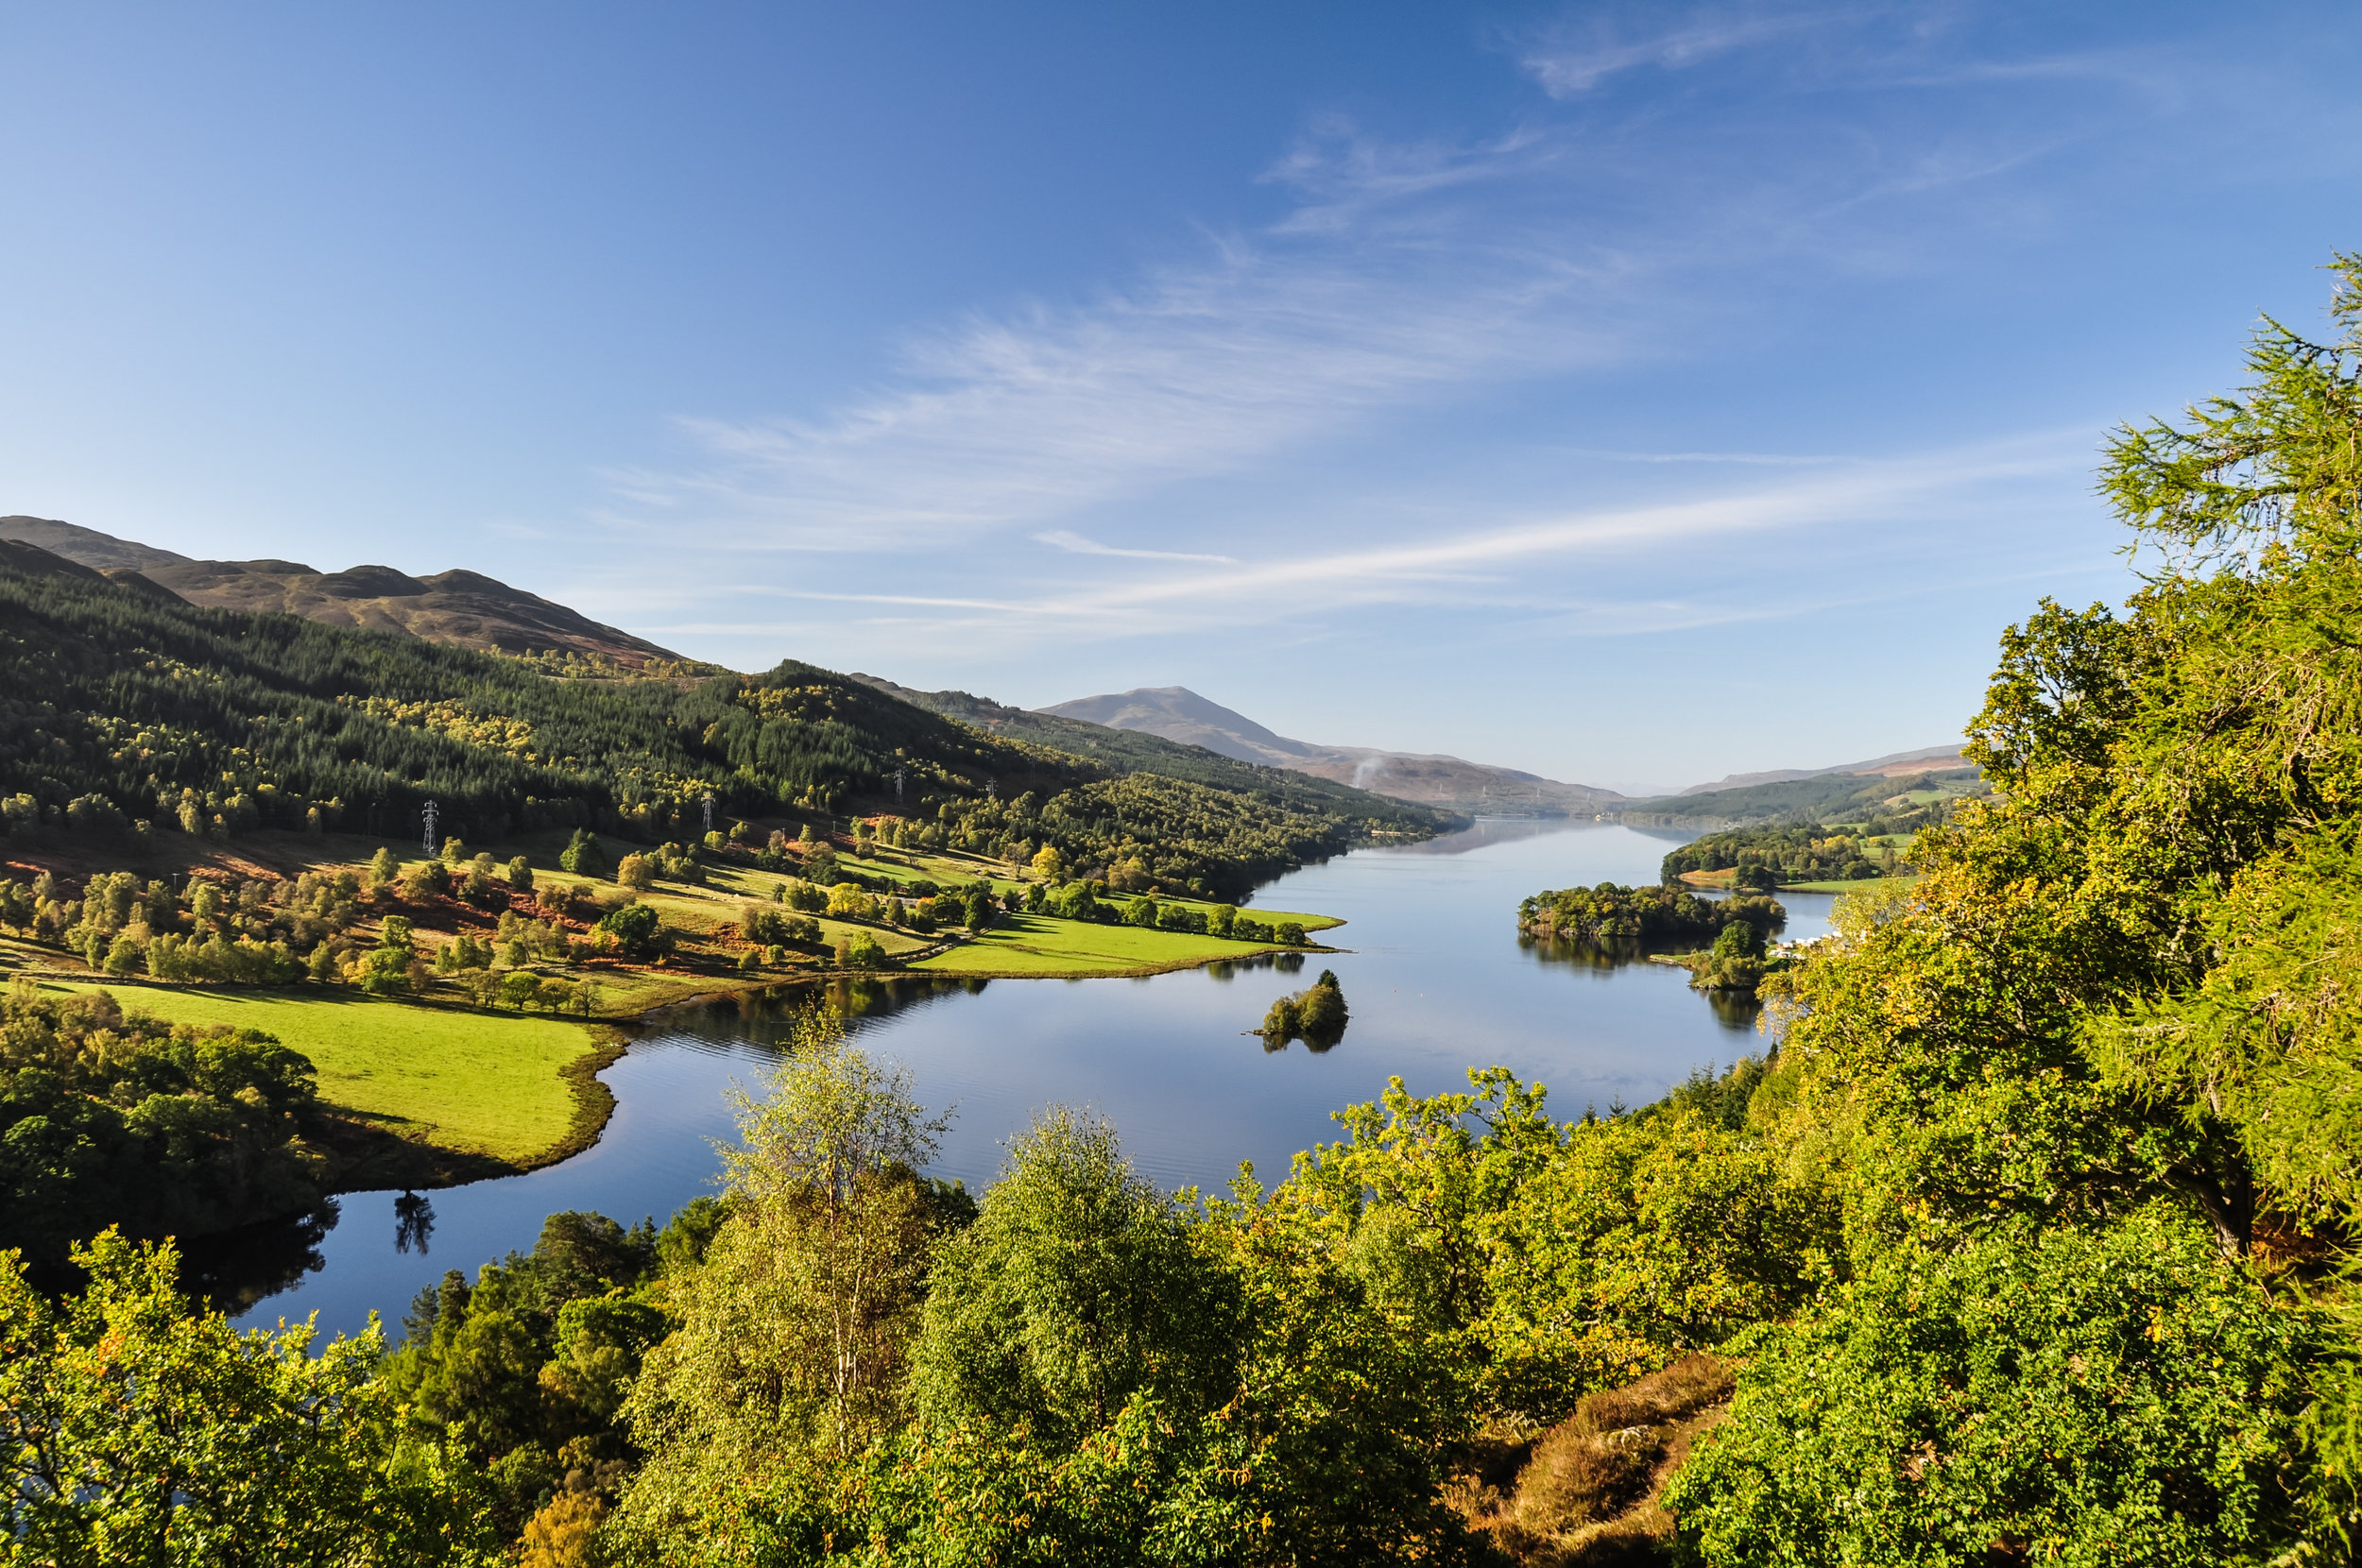 Beautiful summer view across Loch (Lake) Tummel seen from Queen's View, a famous viewpoint. Located near Pitlochry, Perthshire, Scotland, UK. Perthshire is the region of Scotland that has been home to Dougie MacLean since his birth.